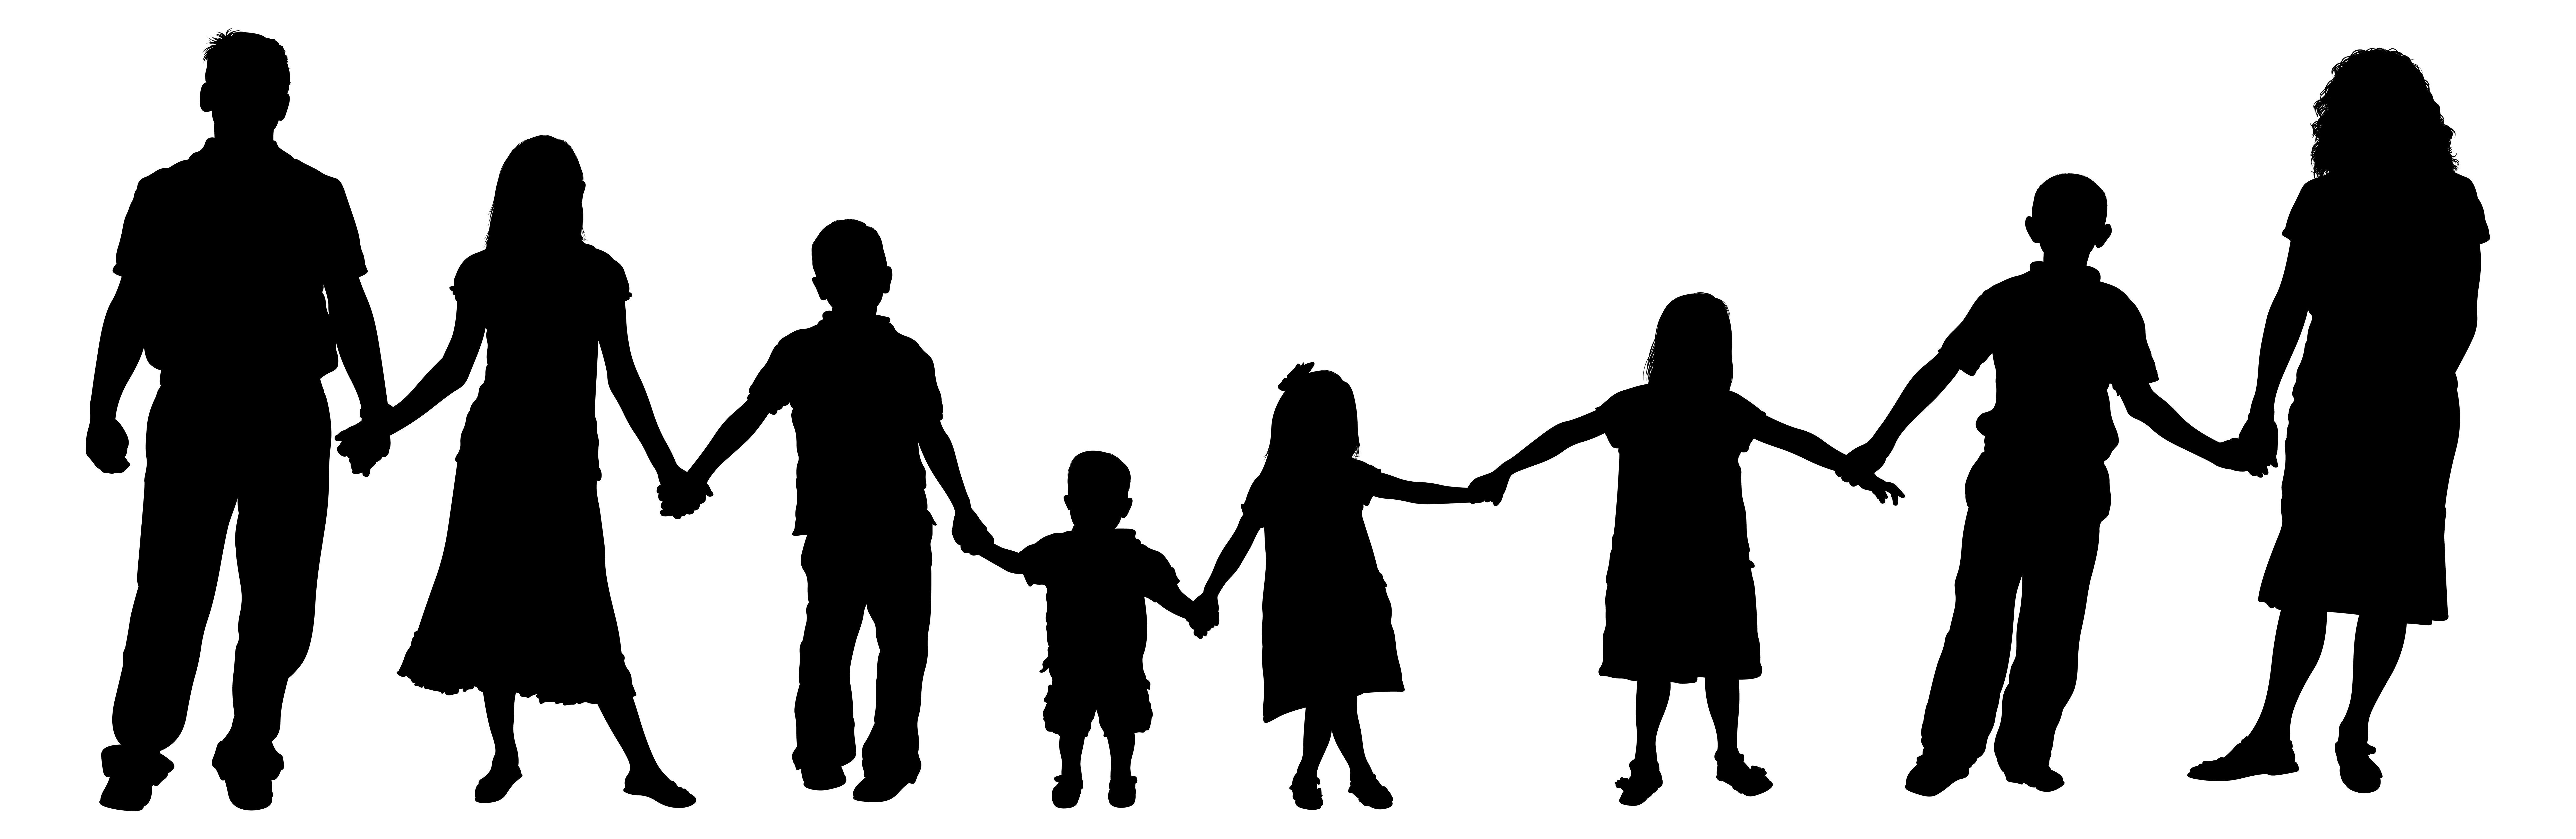 Family Silhouette Pictures at GetDrawings.com.